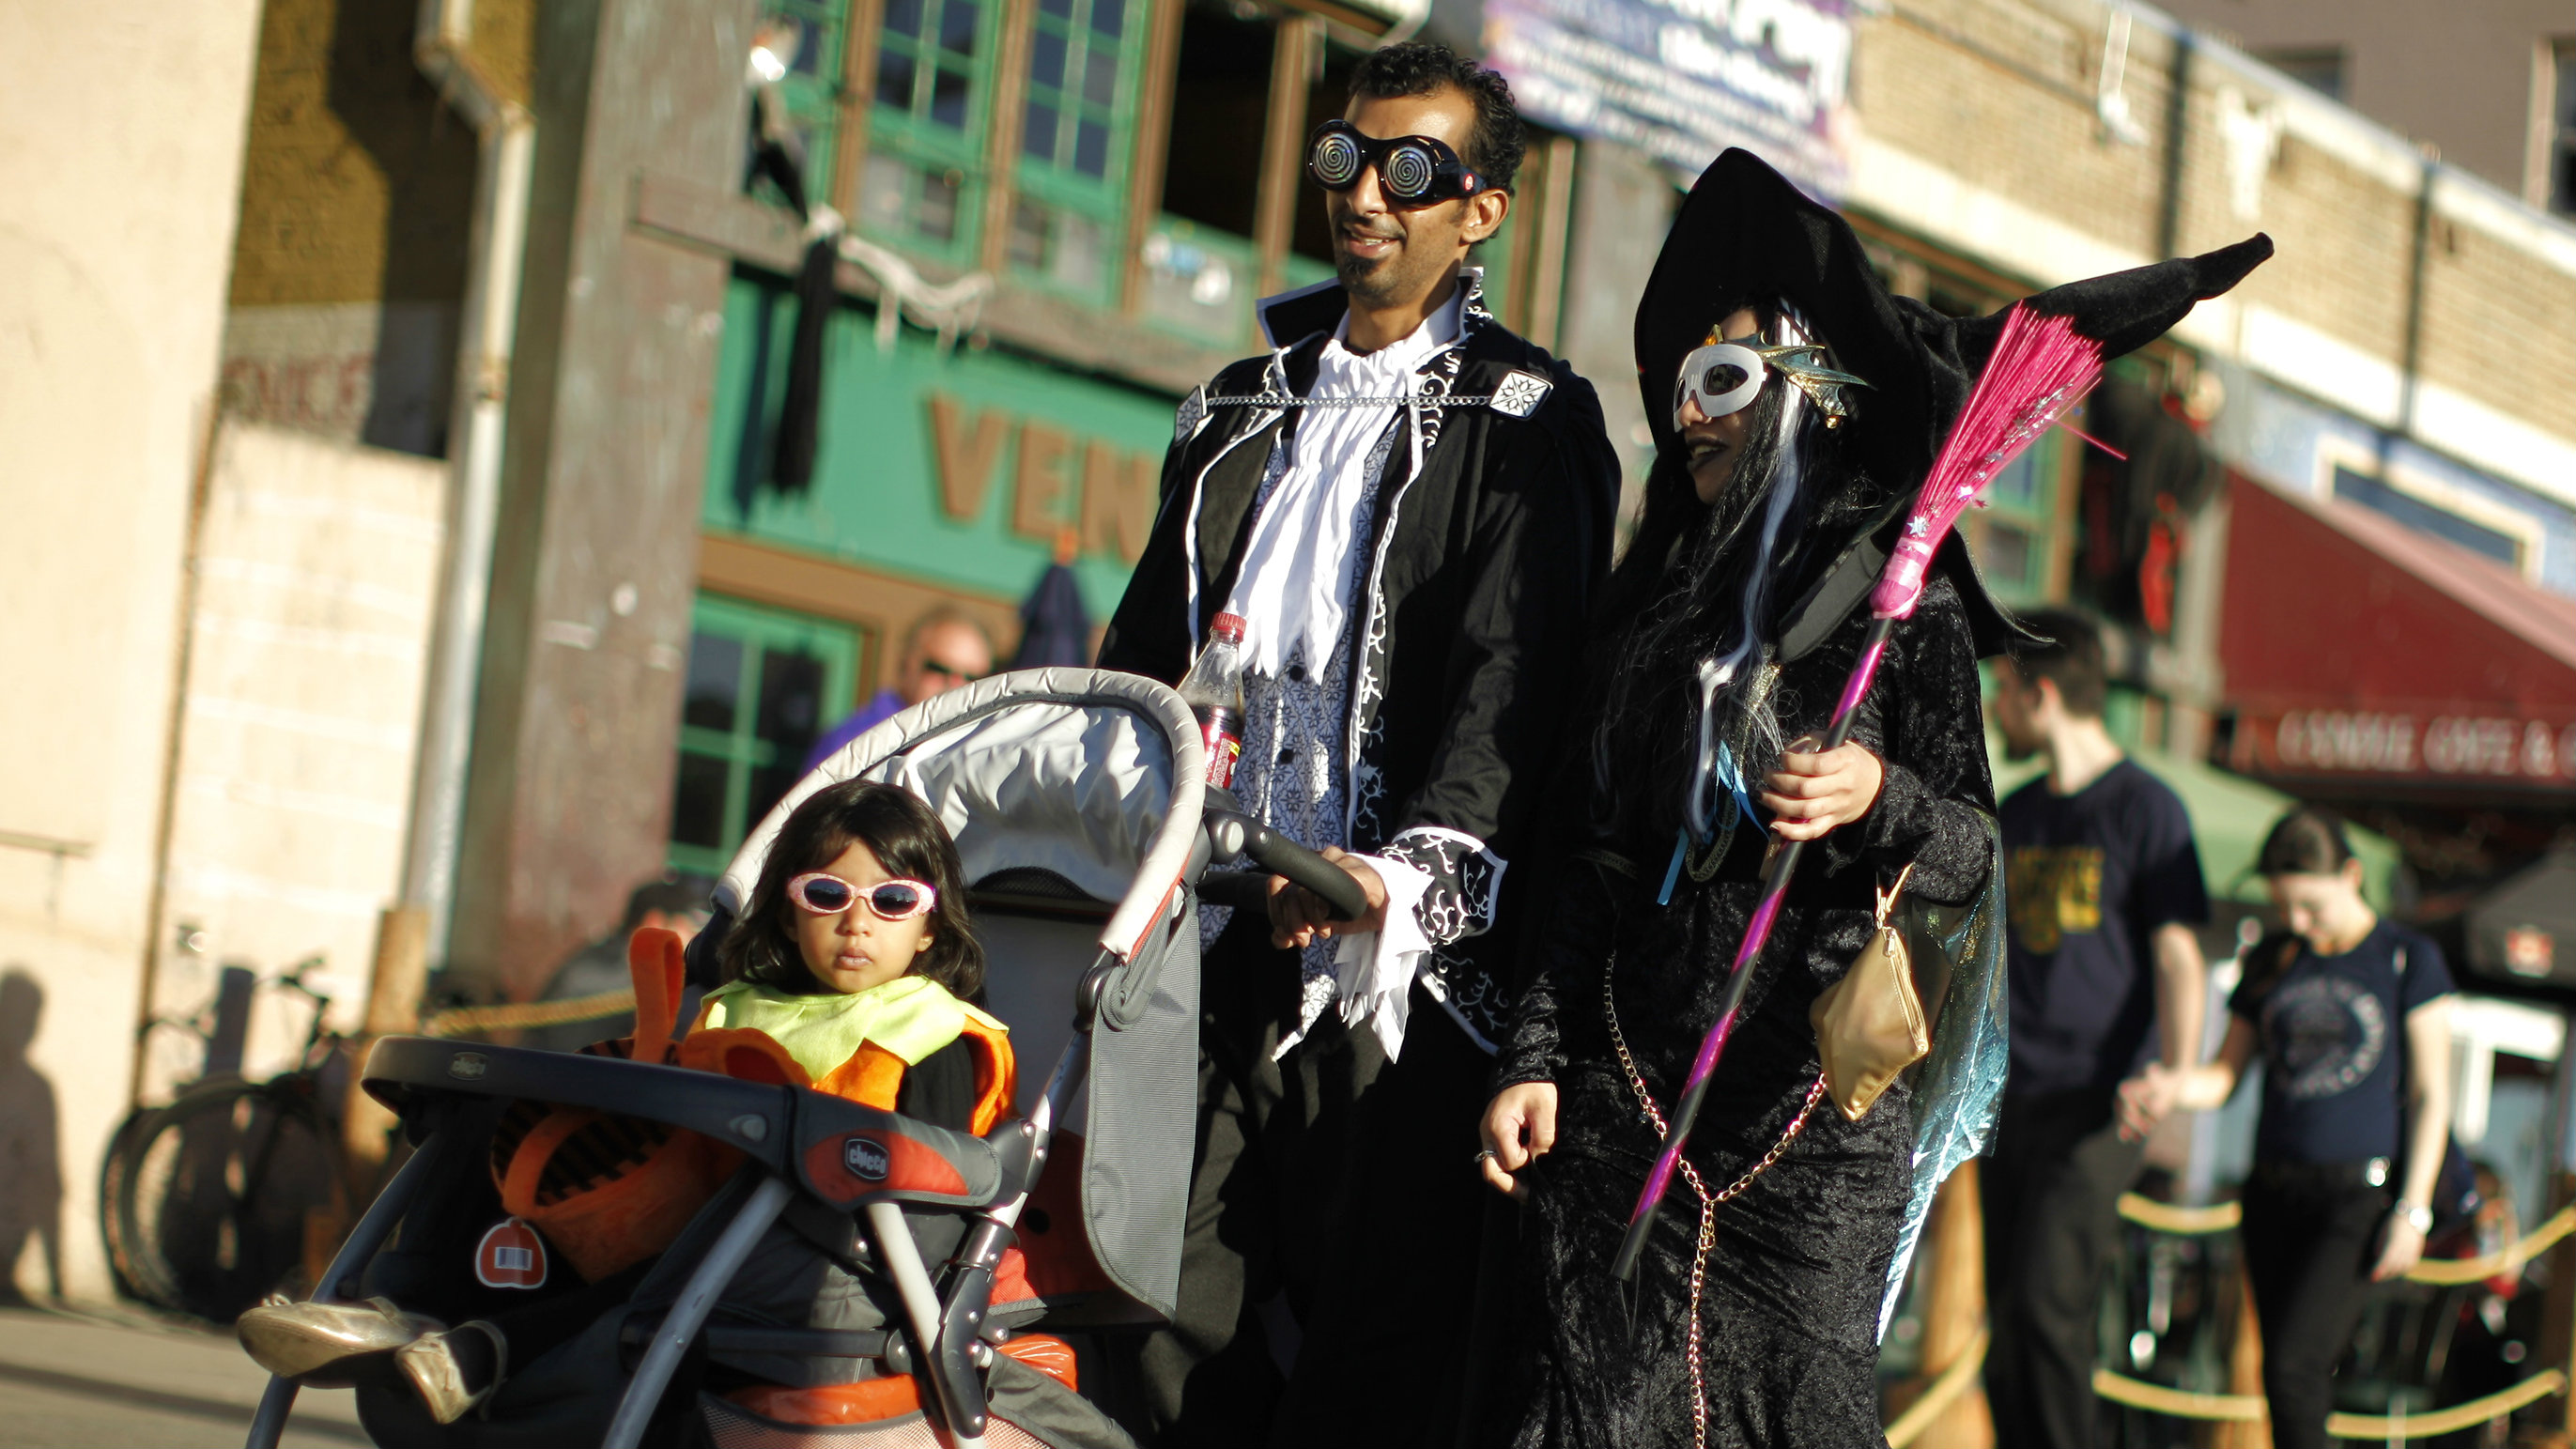 A family walks along Venice Boardwalk in their Halloween costumes in Venice, Los Angeles.